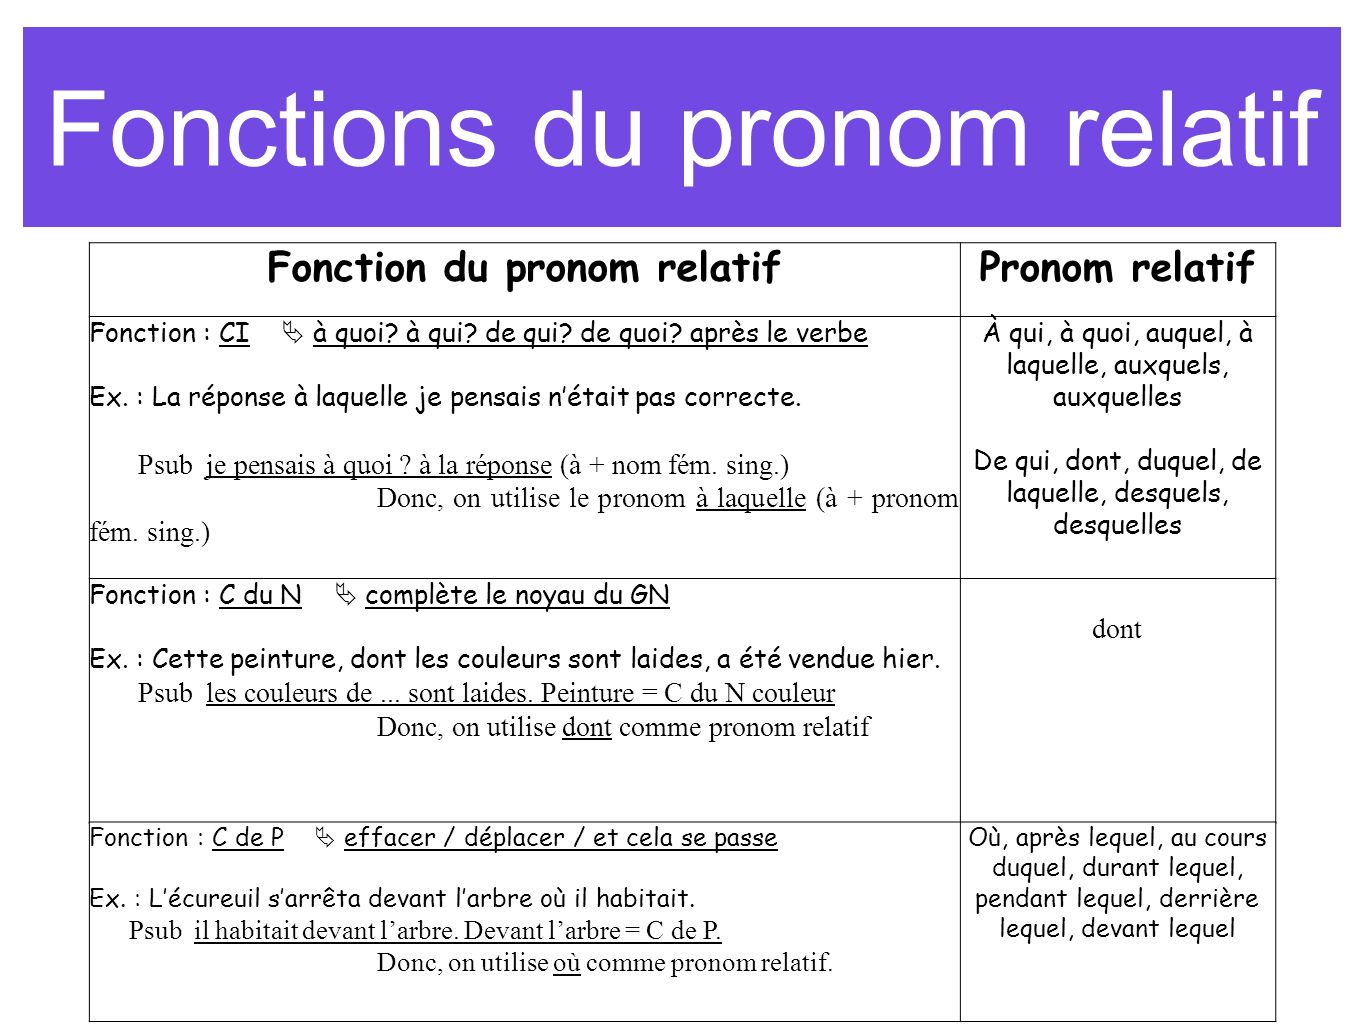 Fonctions du pronom relatif